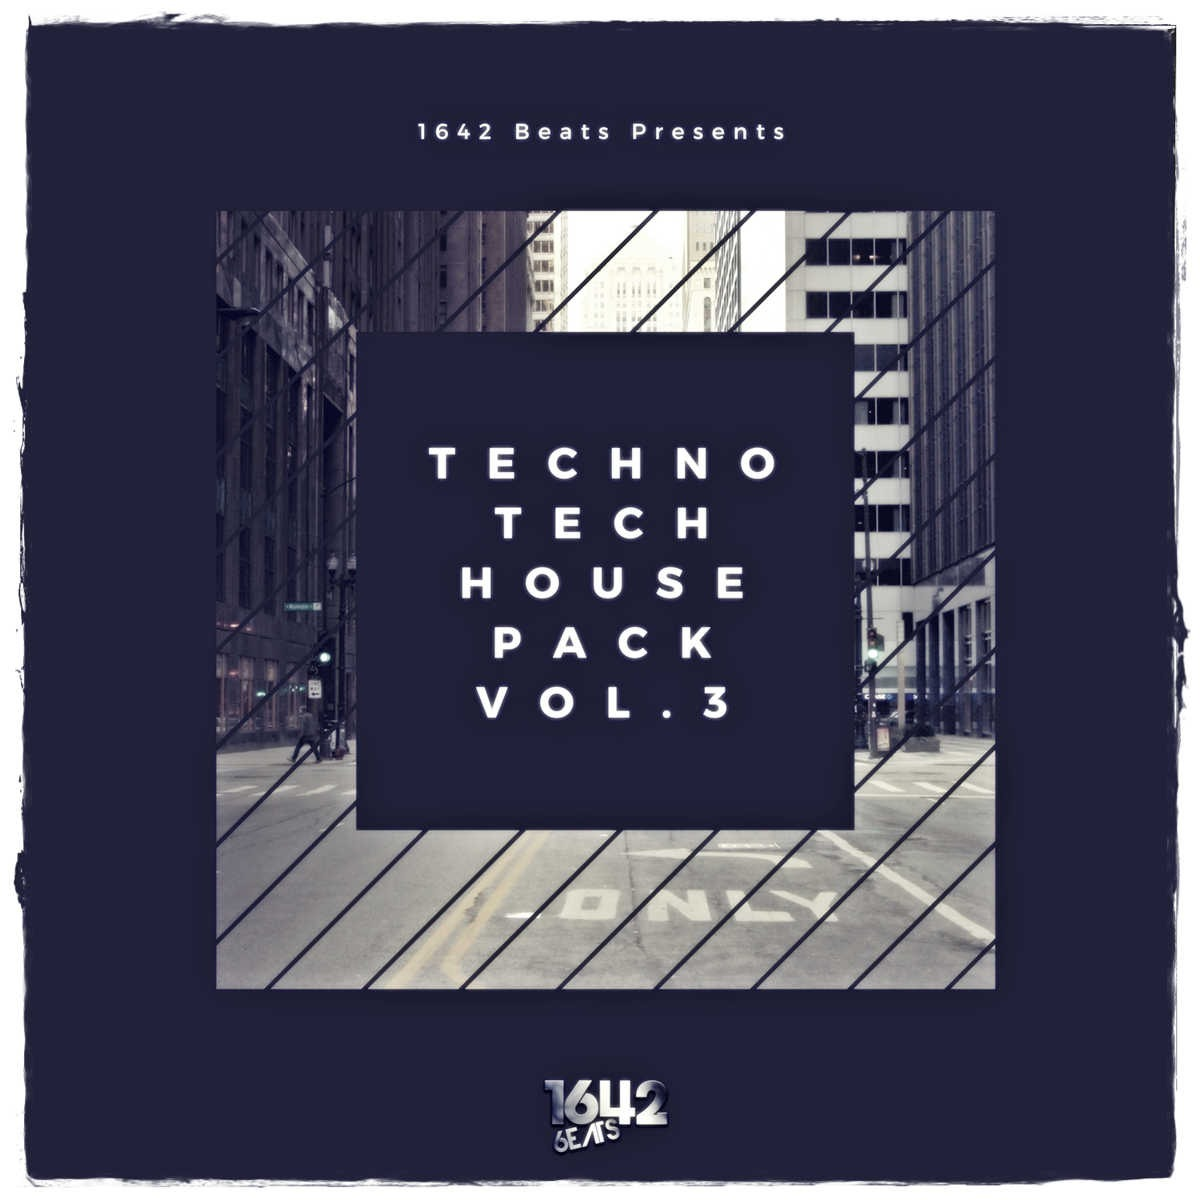 Techno Tech House Pack 3